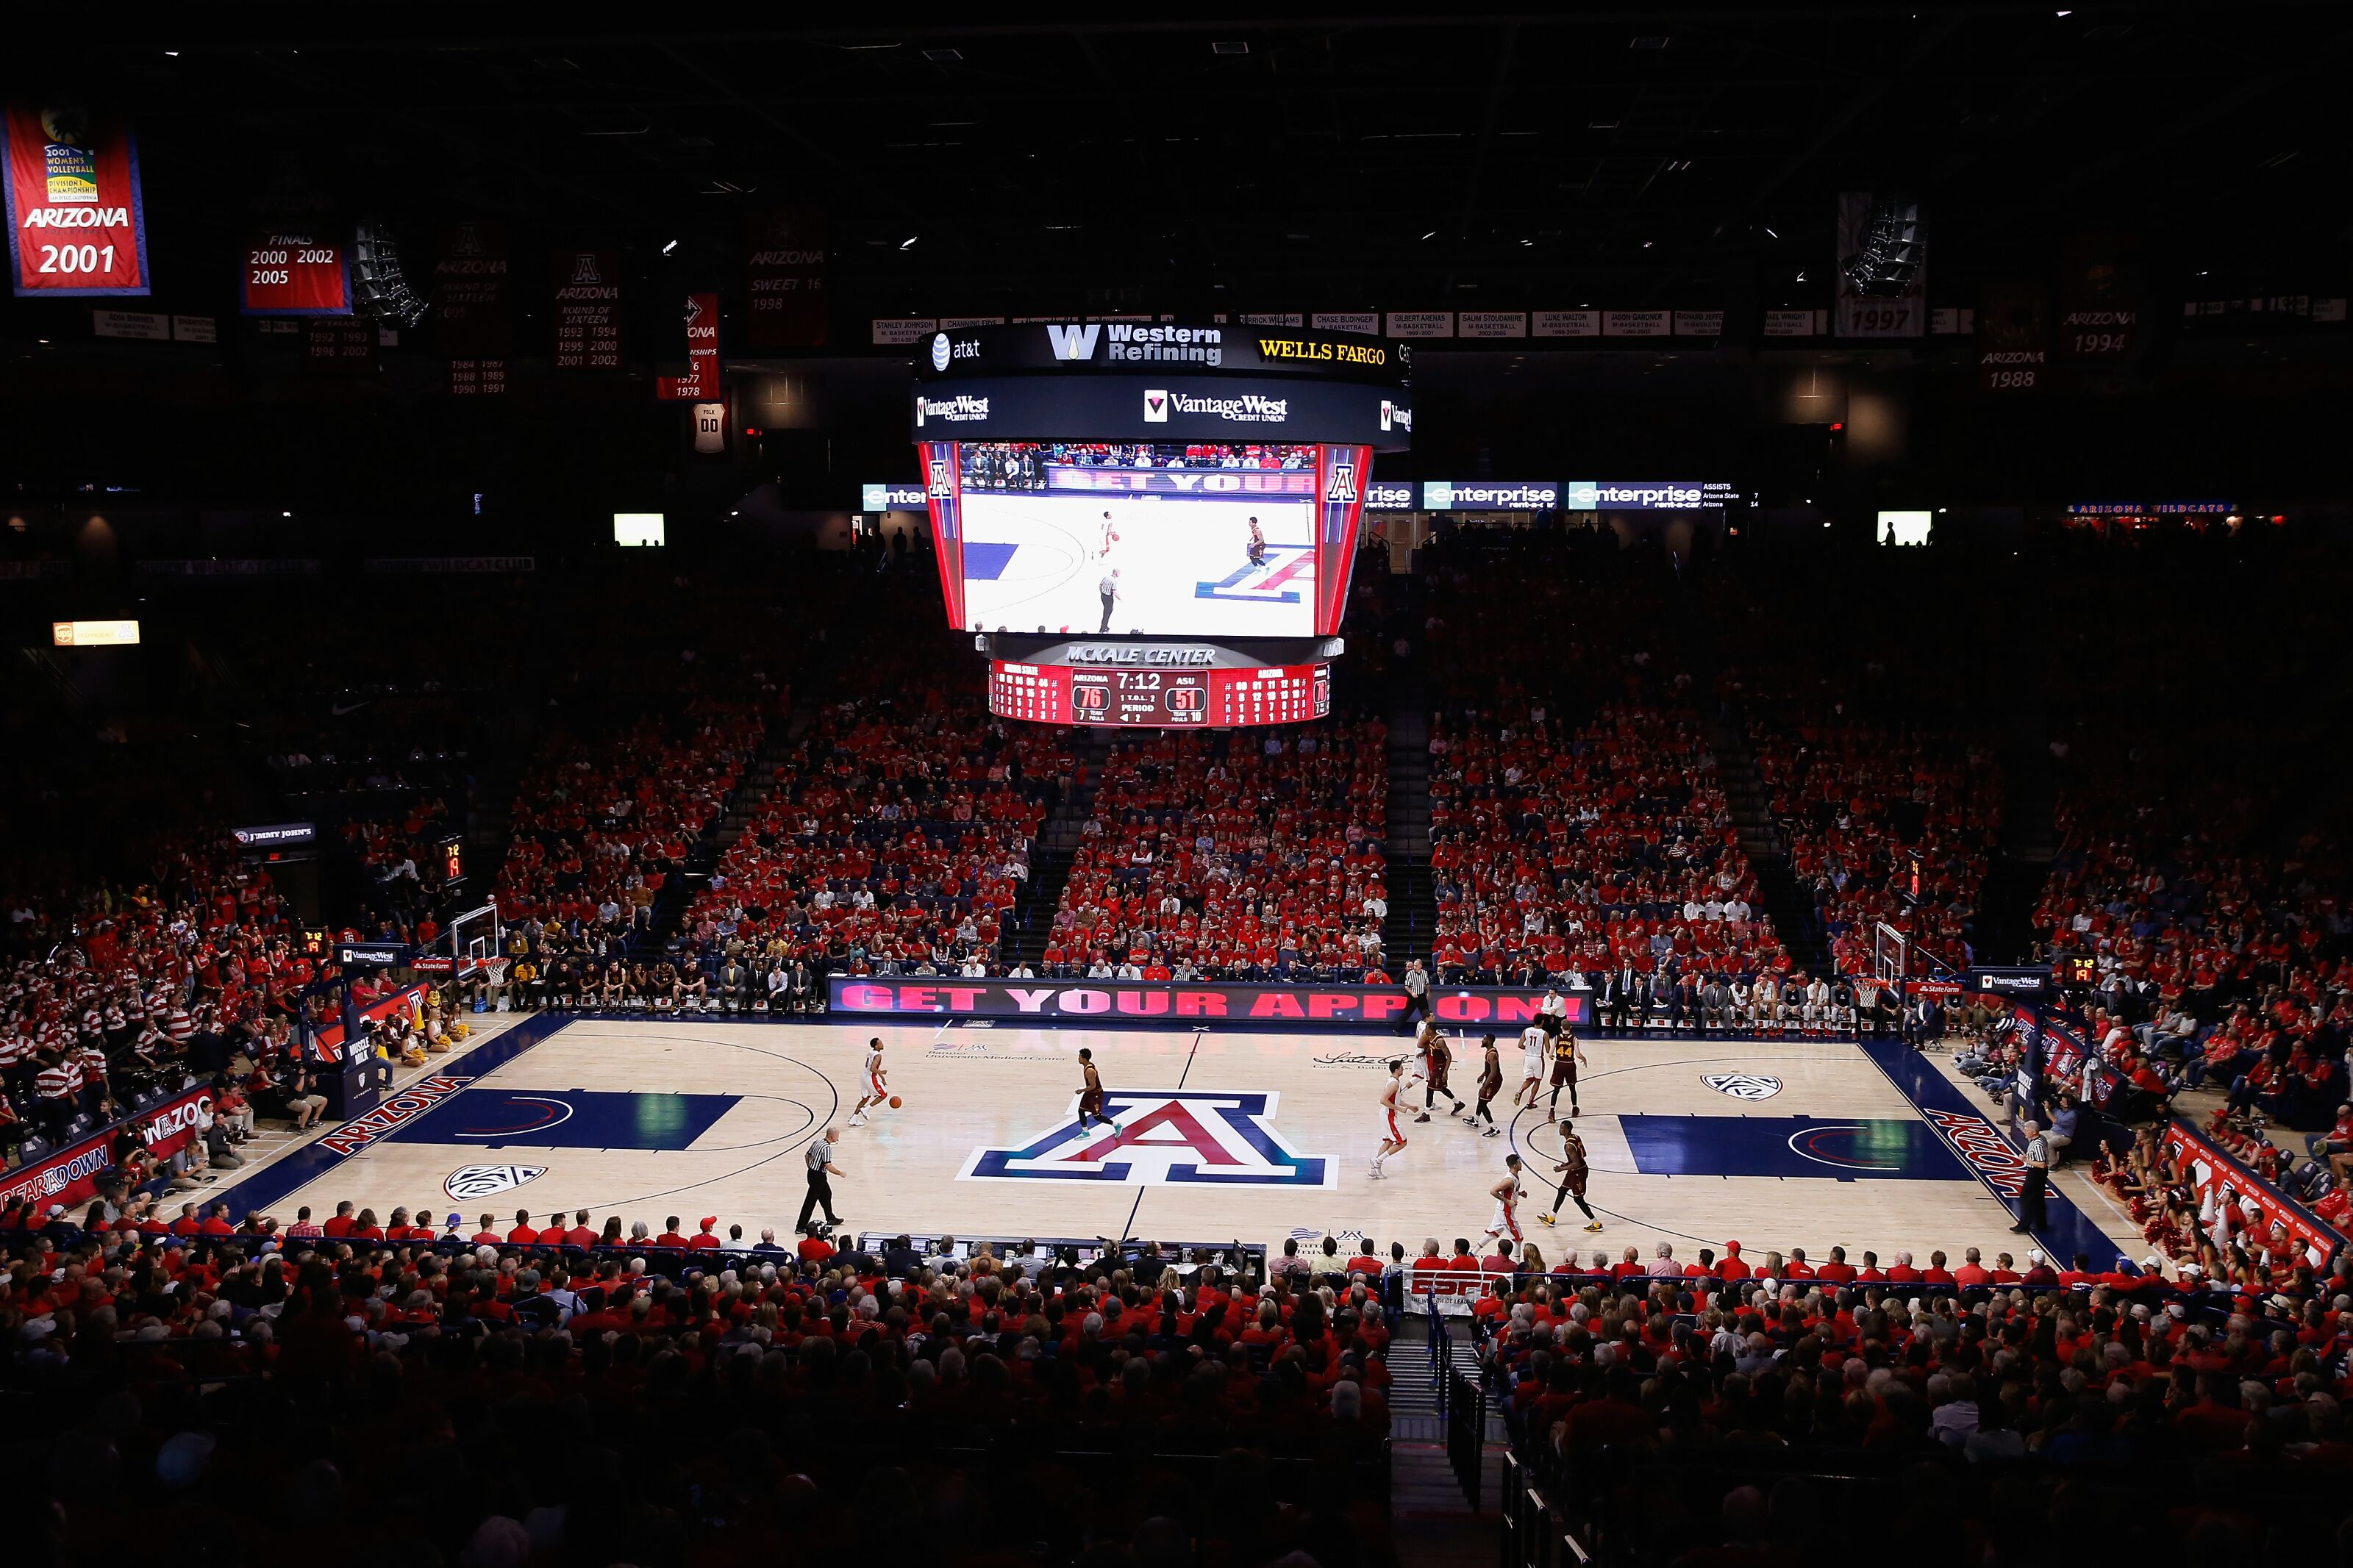 Arizona Basketball: Top ranked center Nathan Bittle schedules official visit